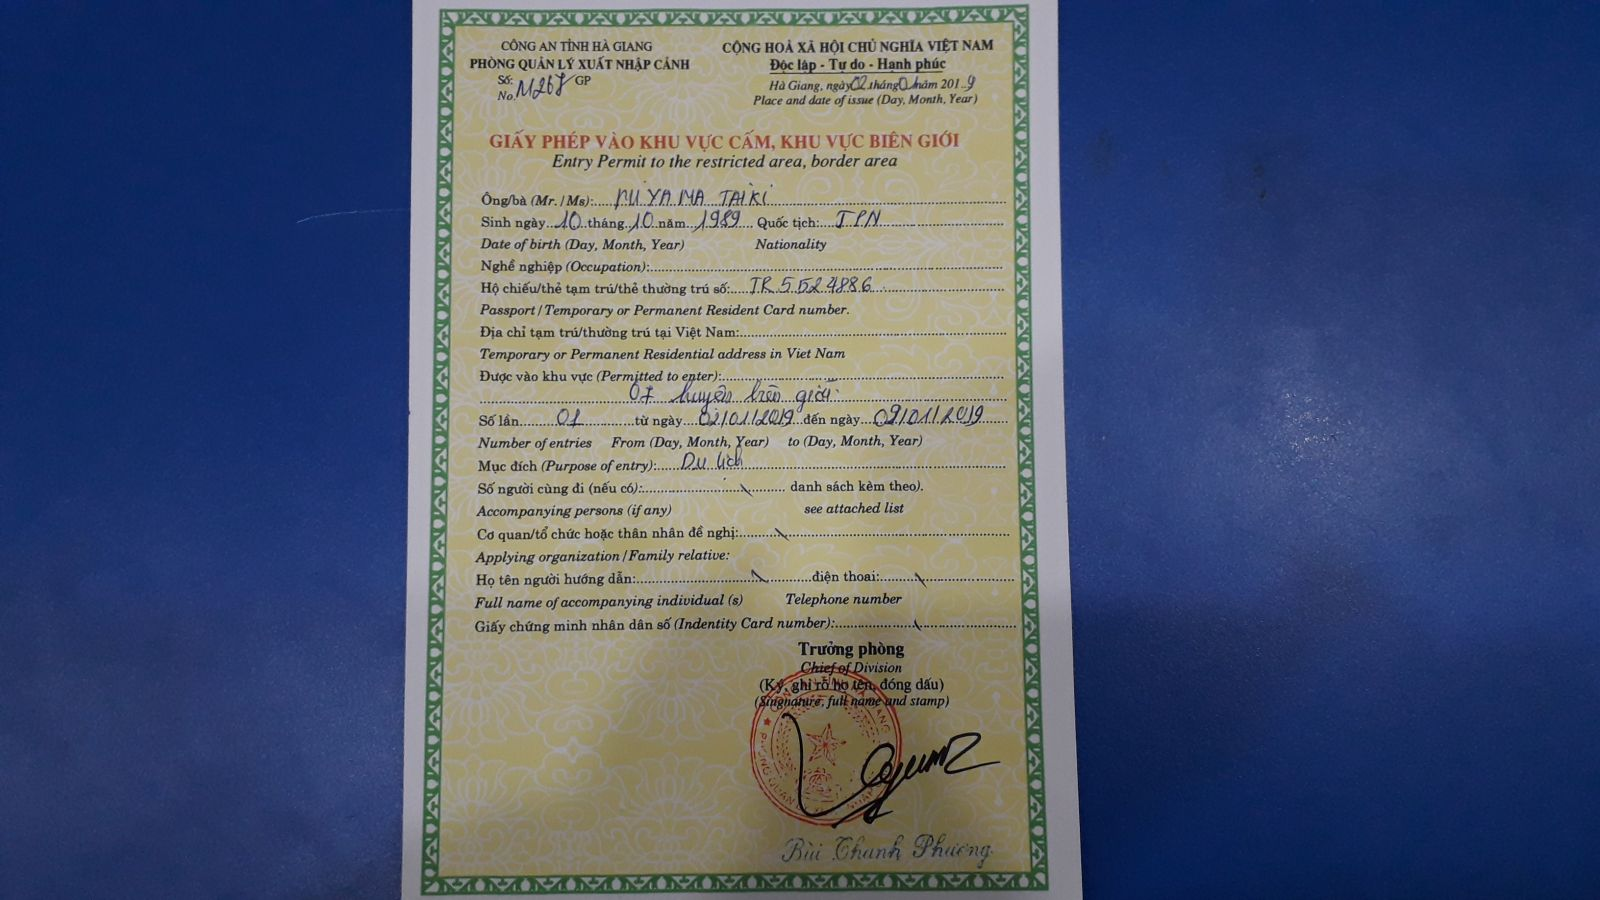 Permit to visit Ha Giang